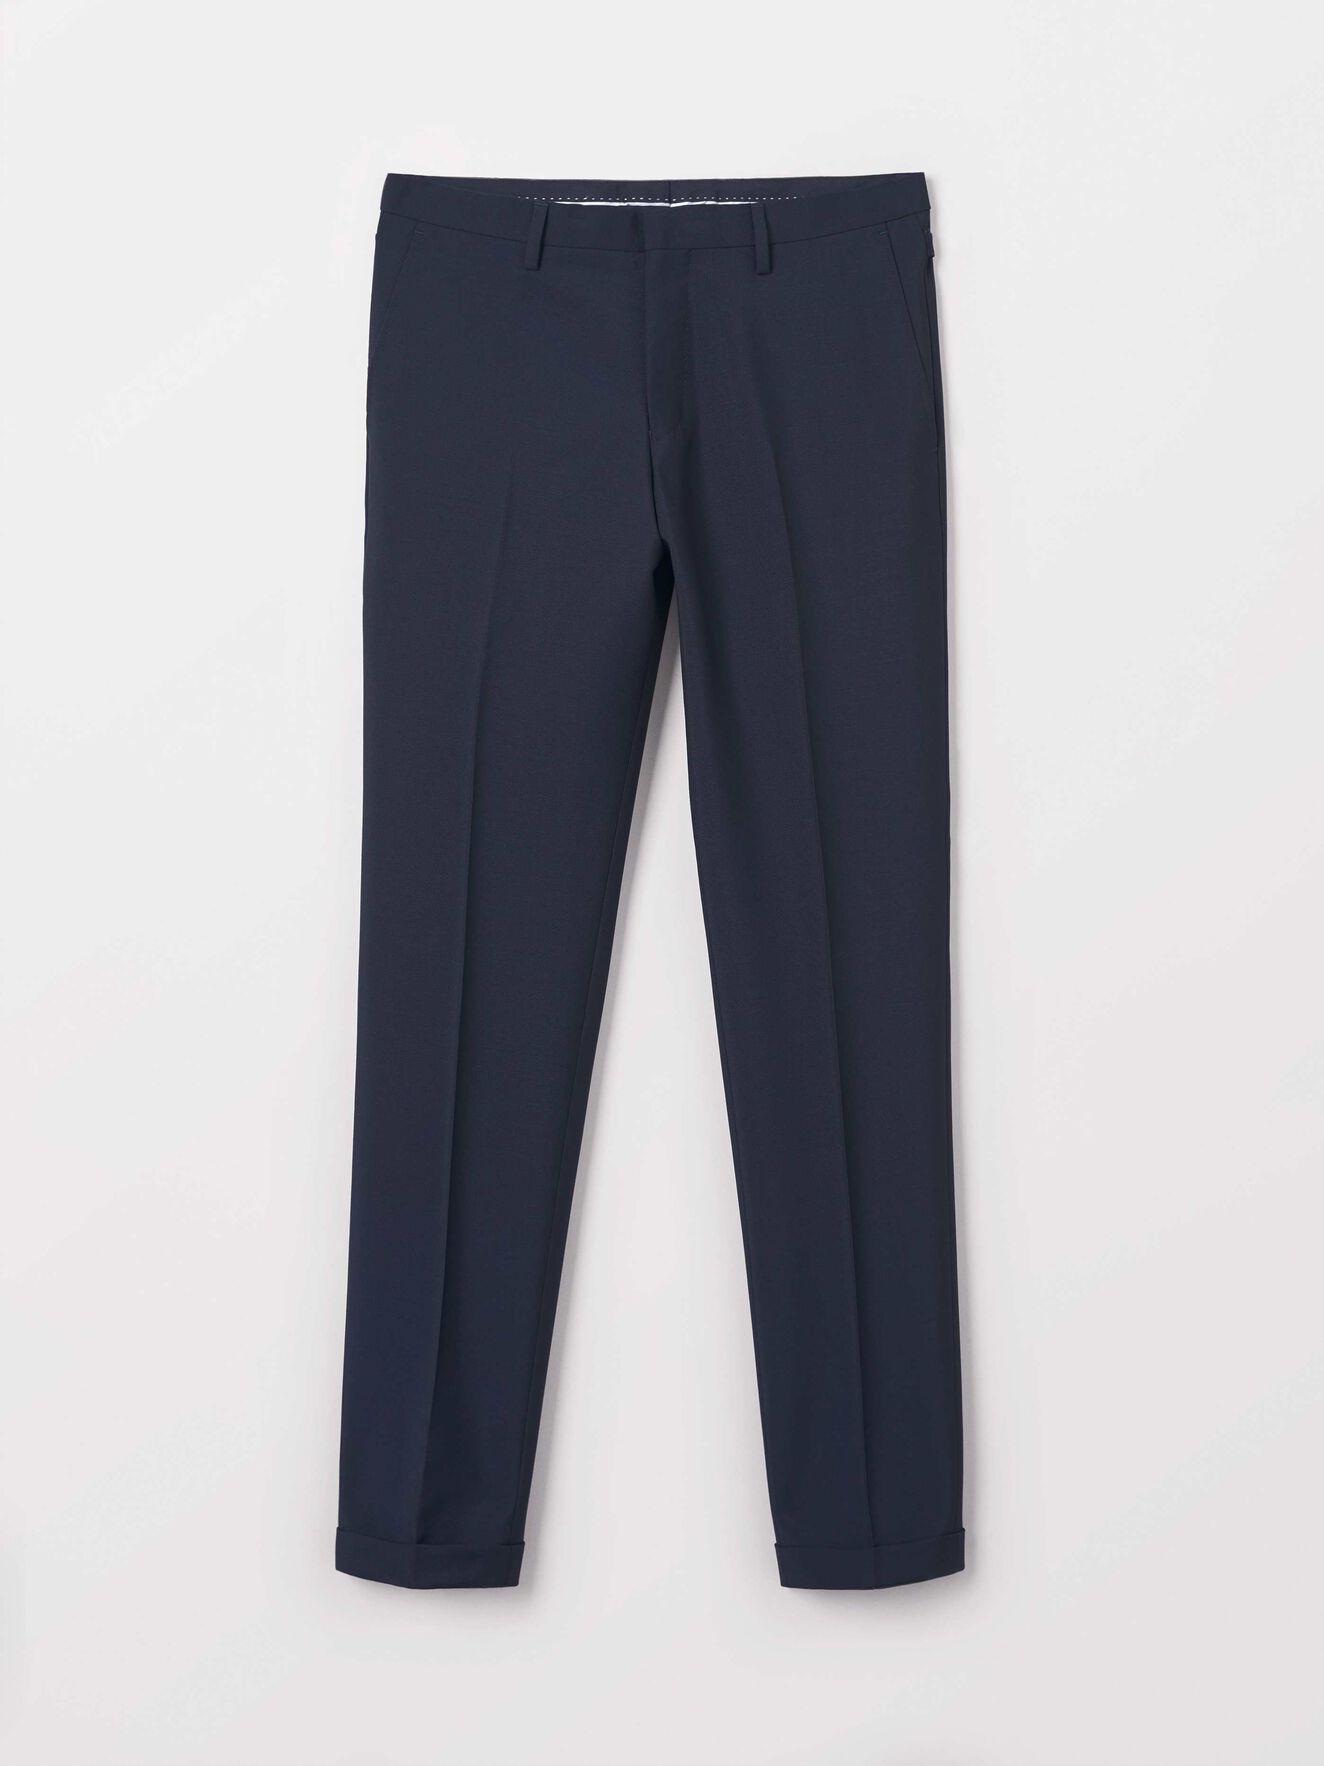 Tretton Trousers in Royal Blue from Tiger of Sweden